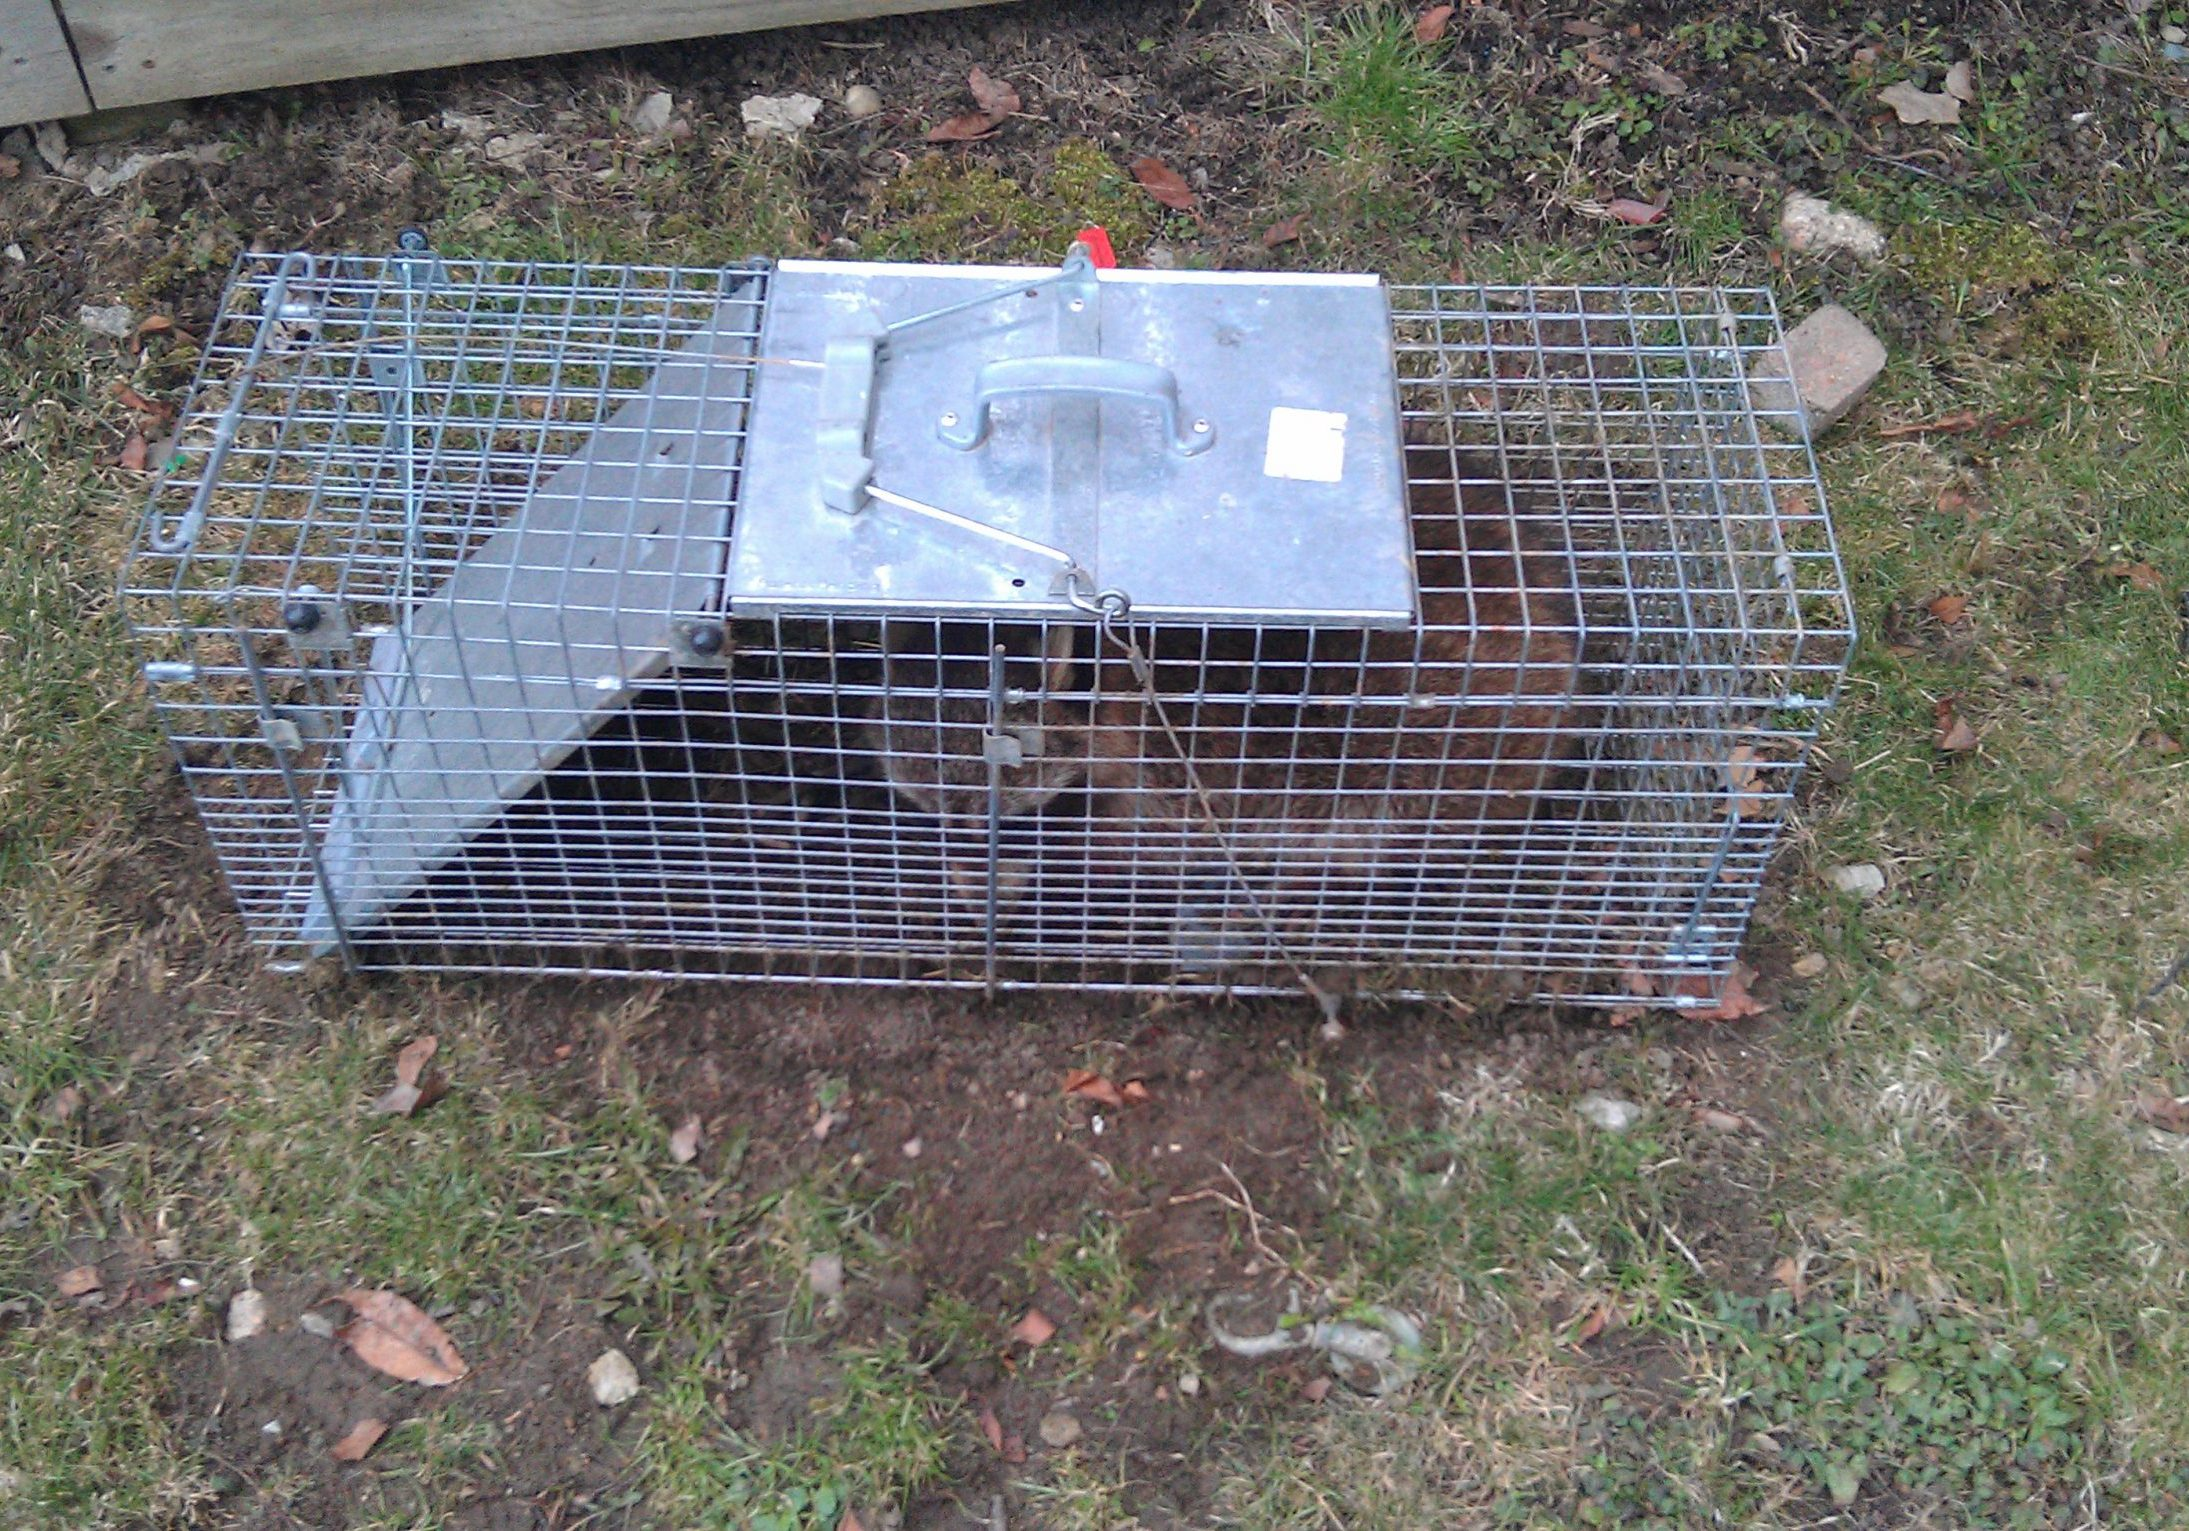 Using a live trap to catch a raccoon